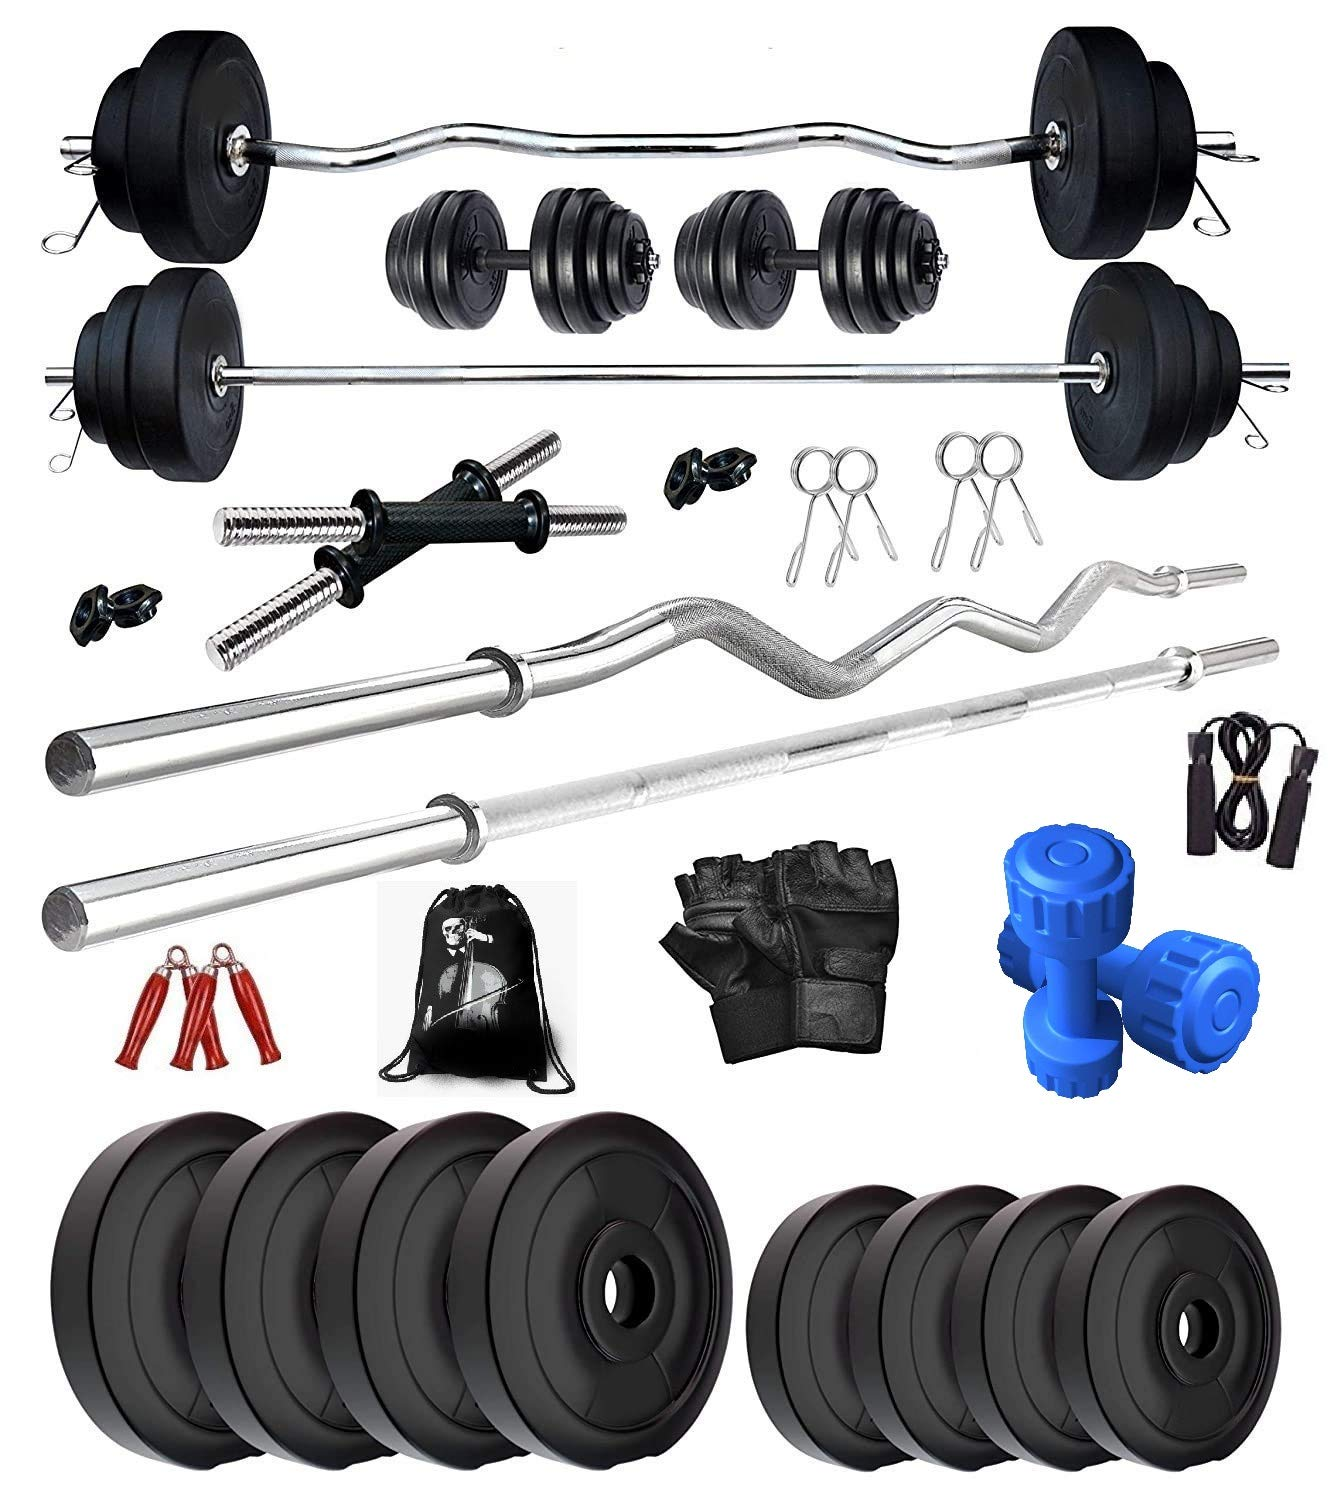 Heavy Duty Curl Bar with Weights 30kg Fitness Gym Training 4 Plates Brand New